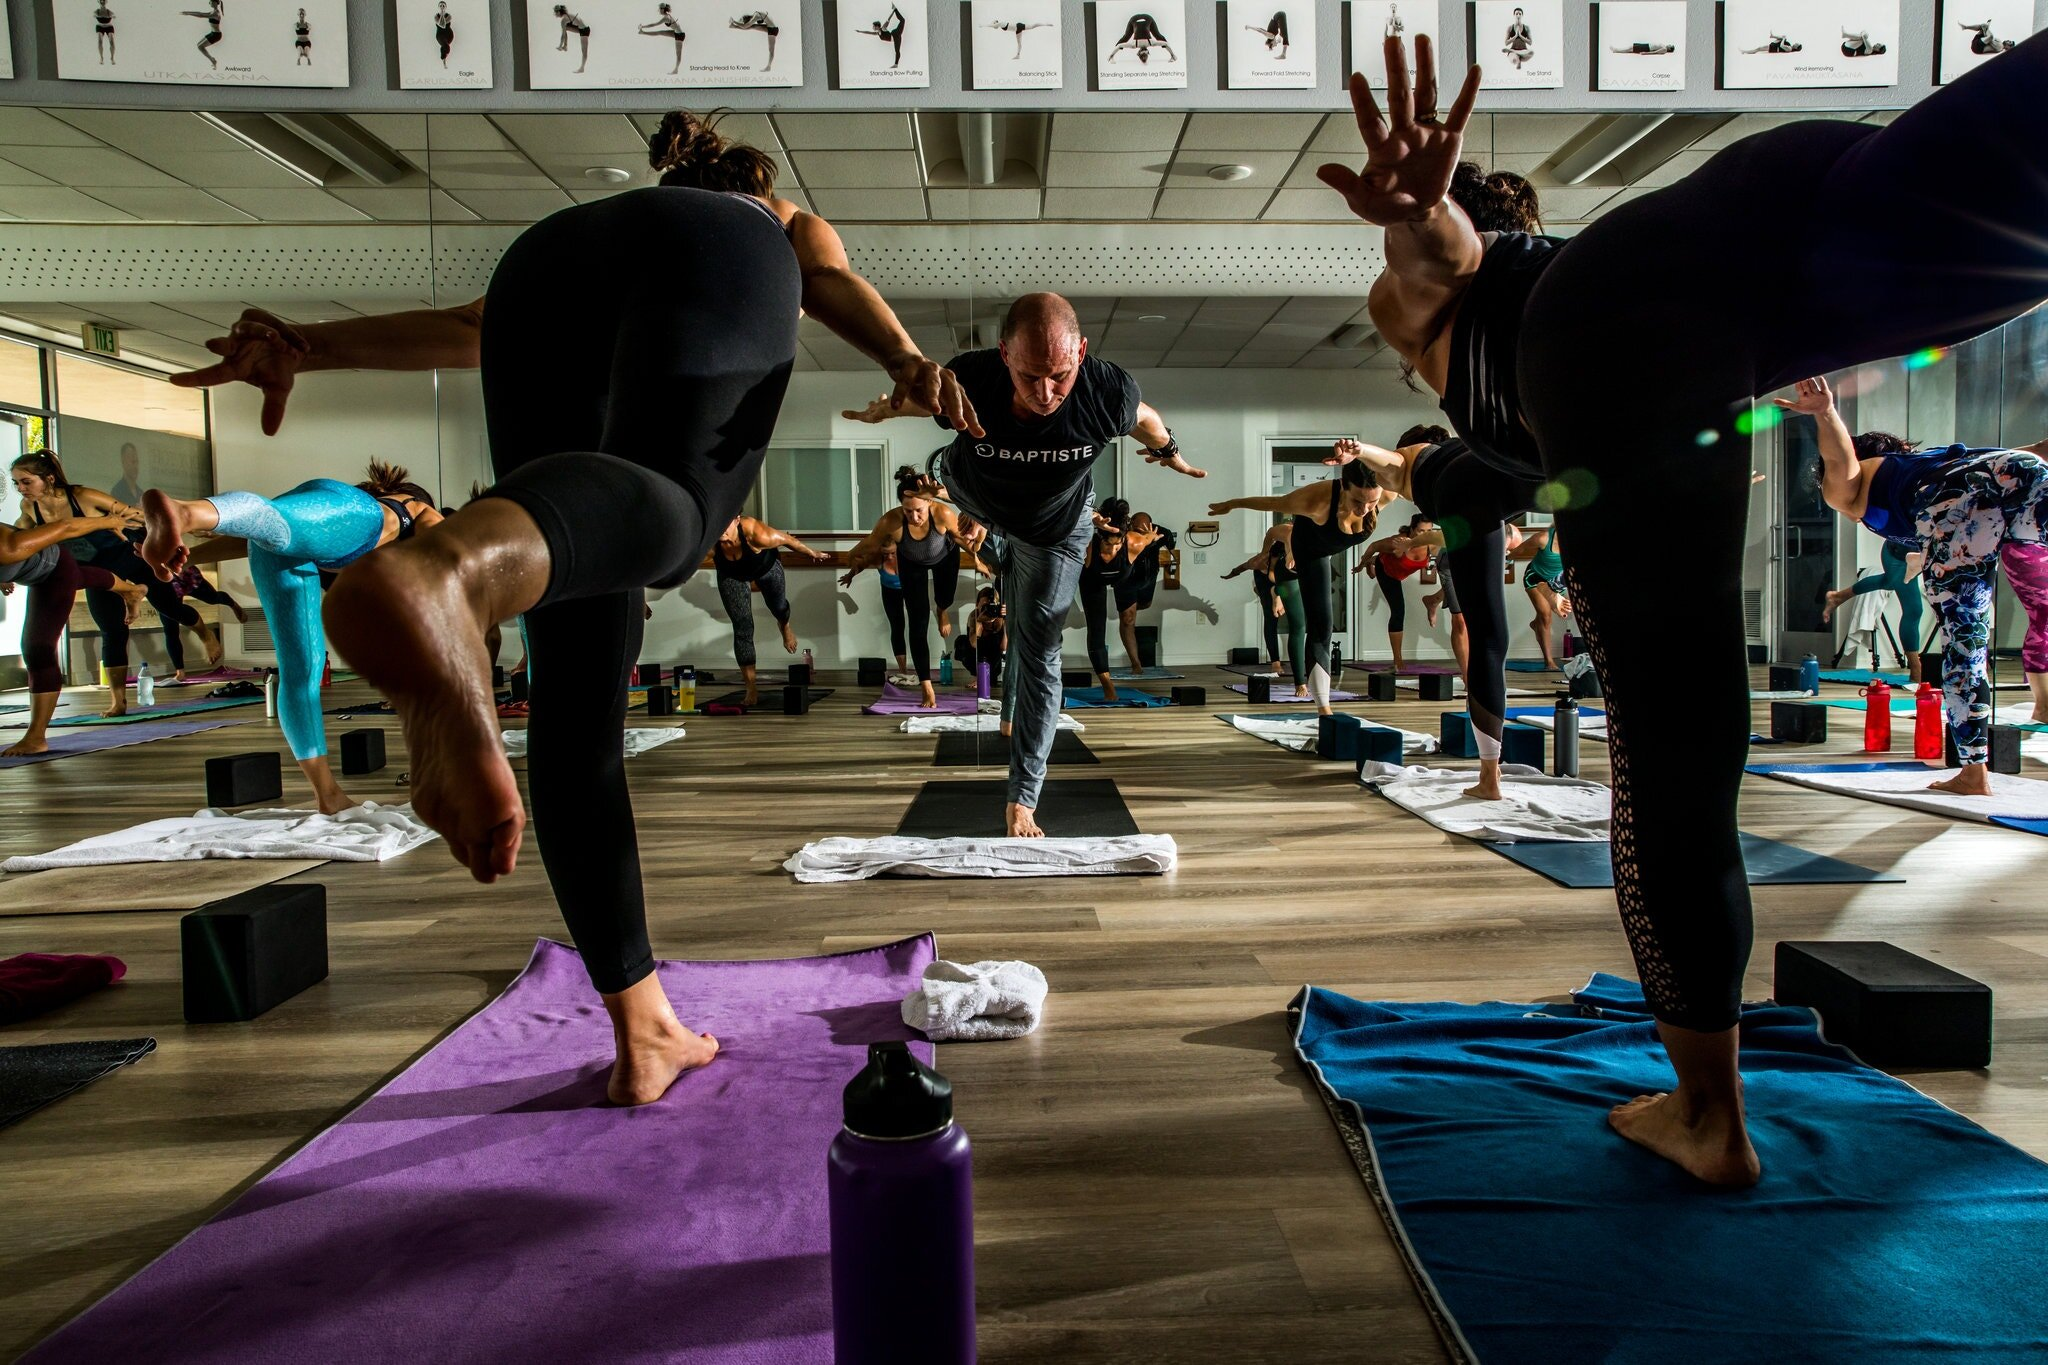 New York Times: January 19, 2019 - Yoga and Veterans: A Different Kind of Warrior